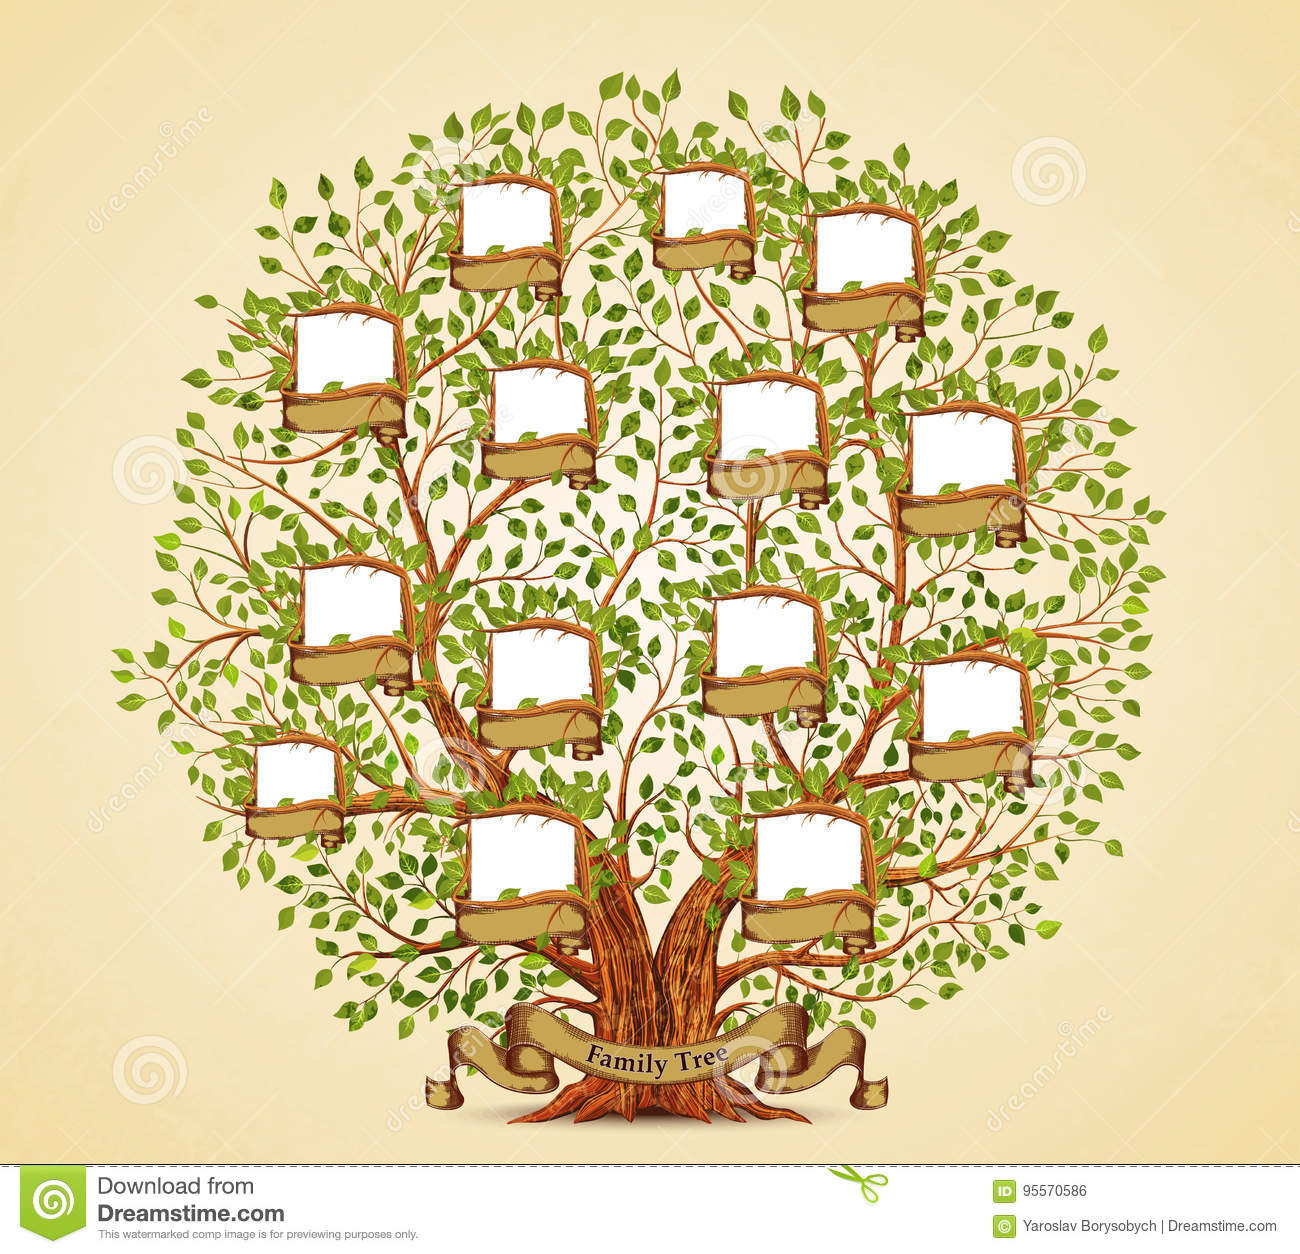 Family tree template vintage vector stock vector for Picture of family tree template